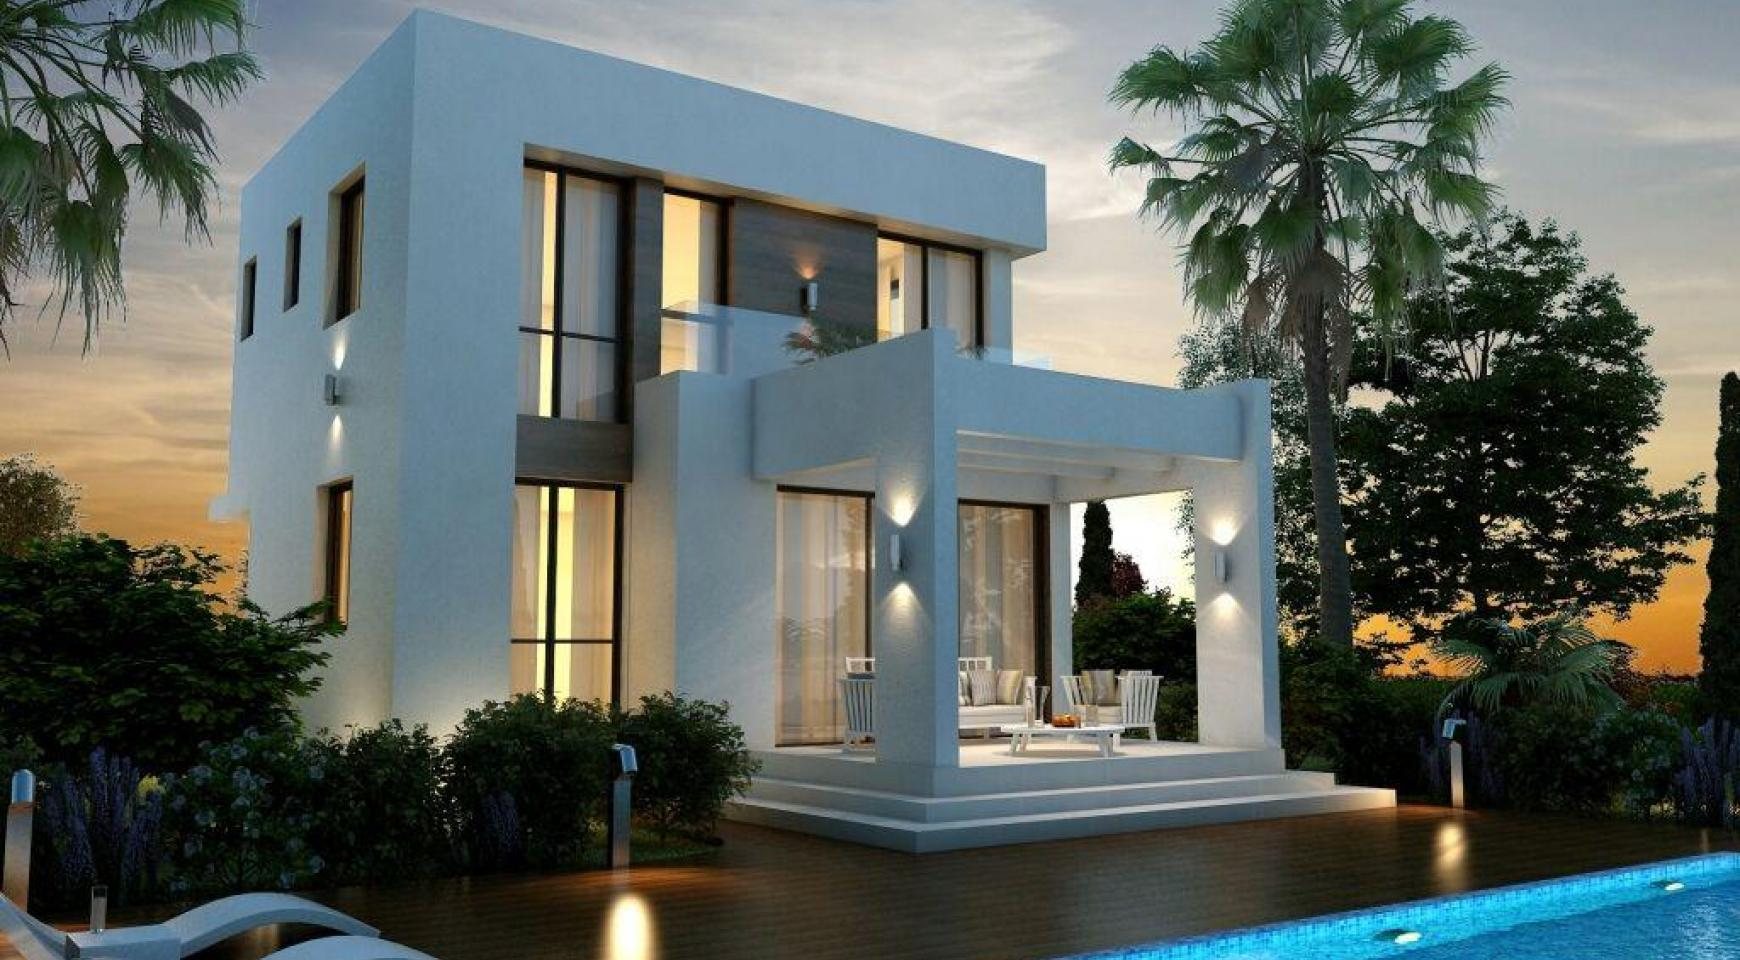 3 Bedroom Villa within a Complex near the Beach - 6